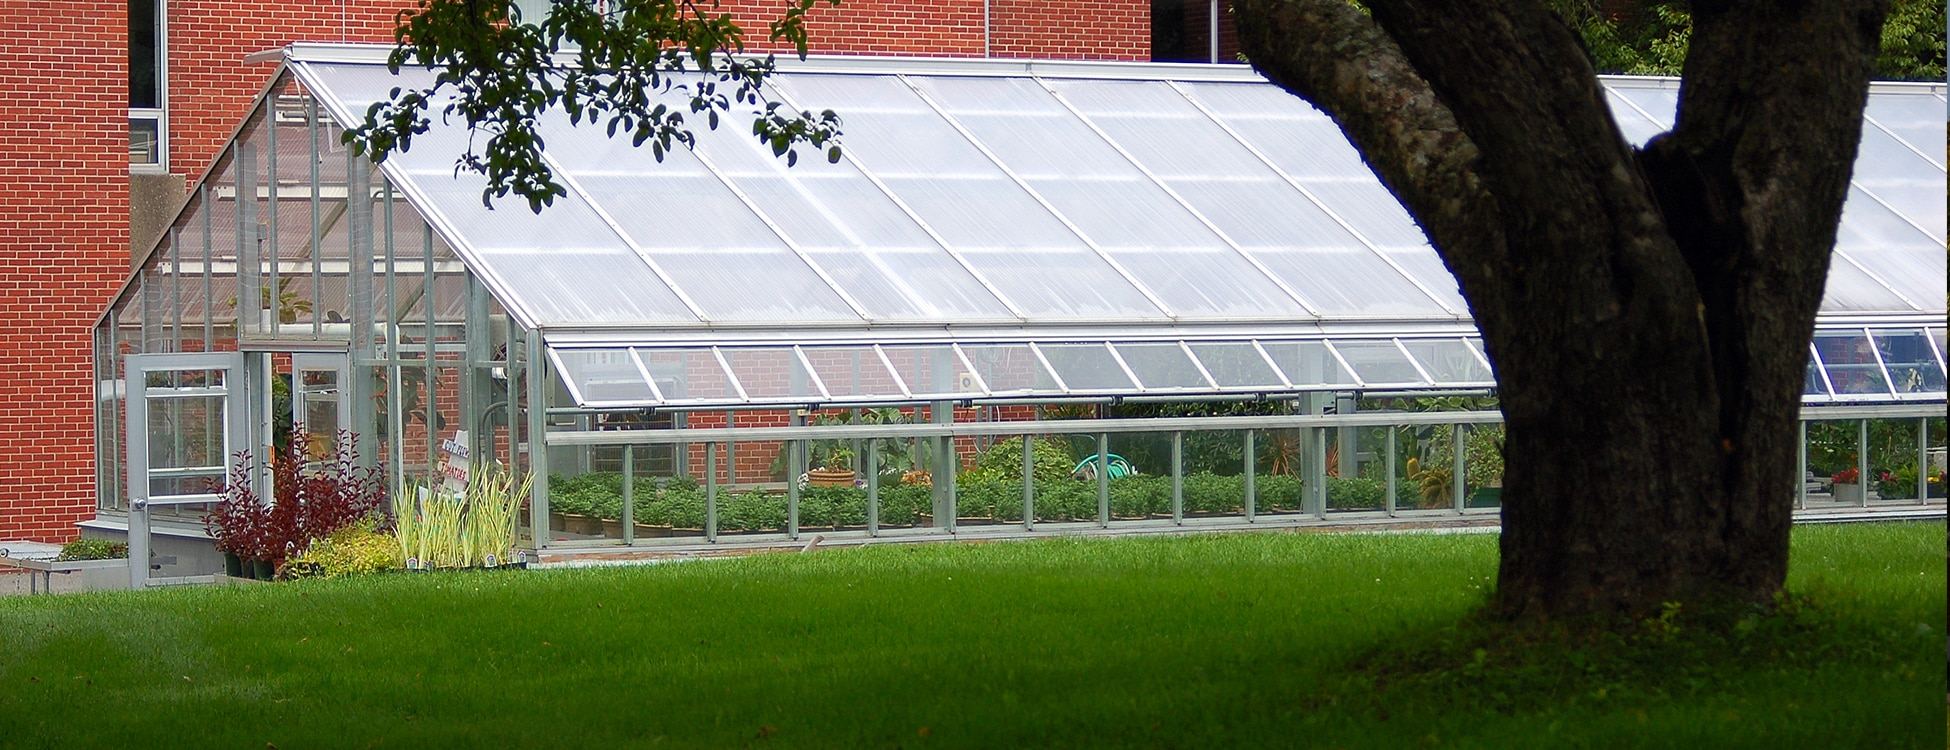 greenhouse, Randolph Center campus, landscape contracting, flowers, plants